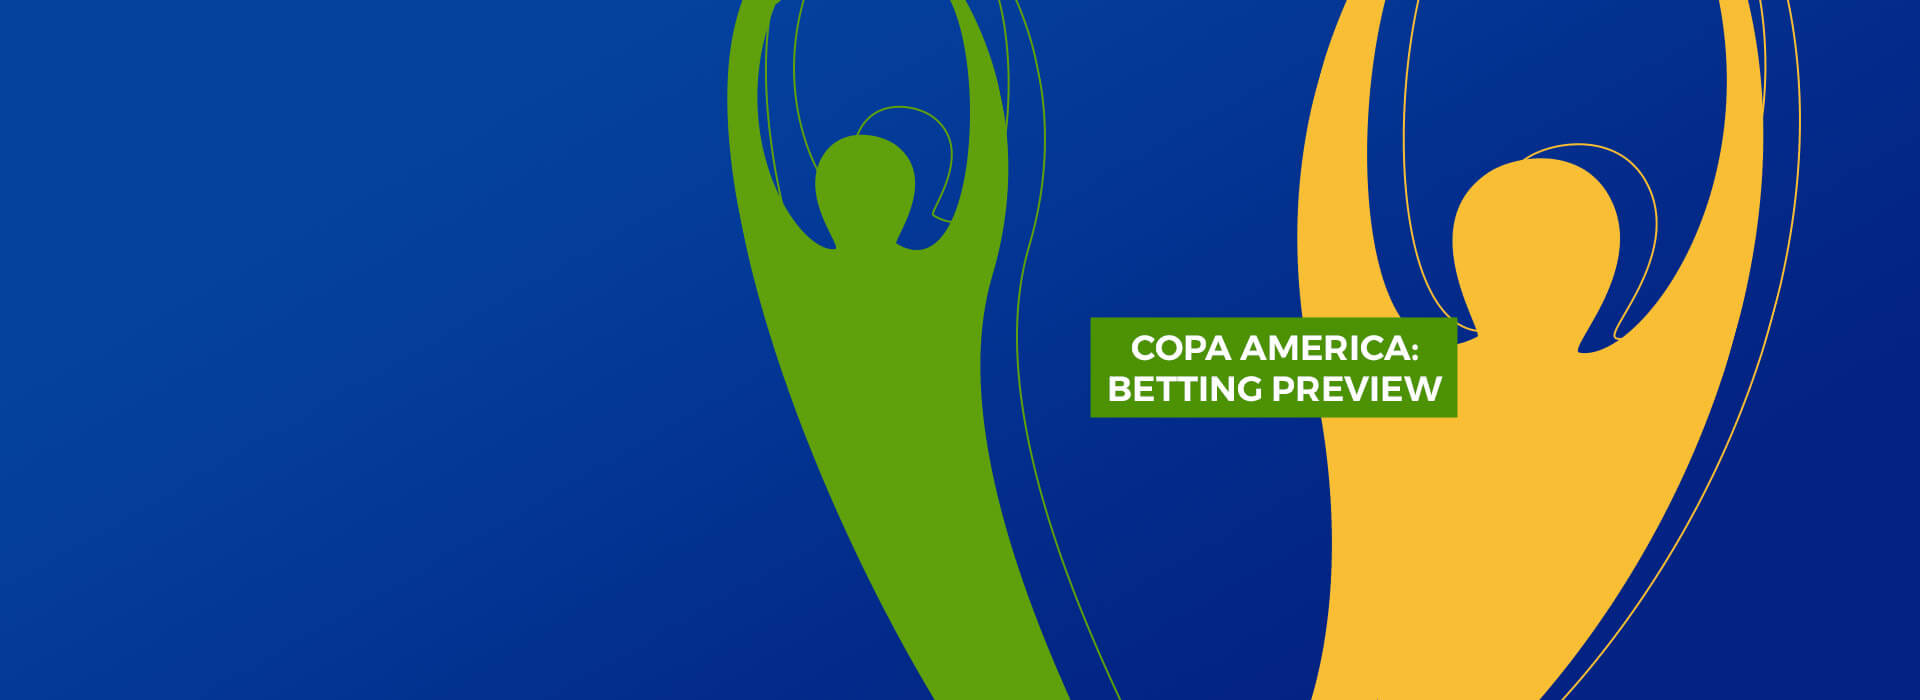 Copa América Betting Preview